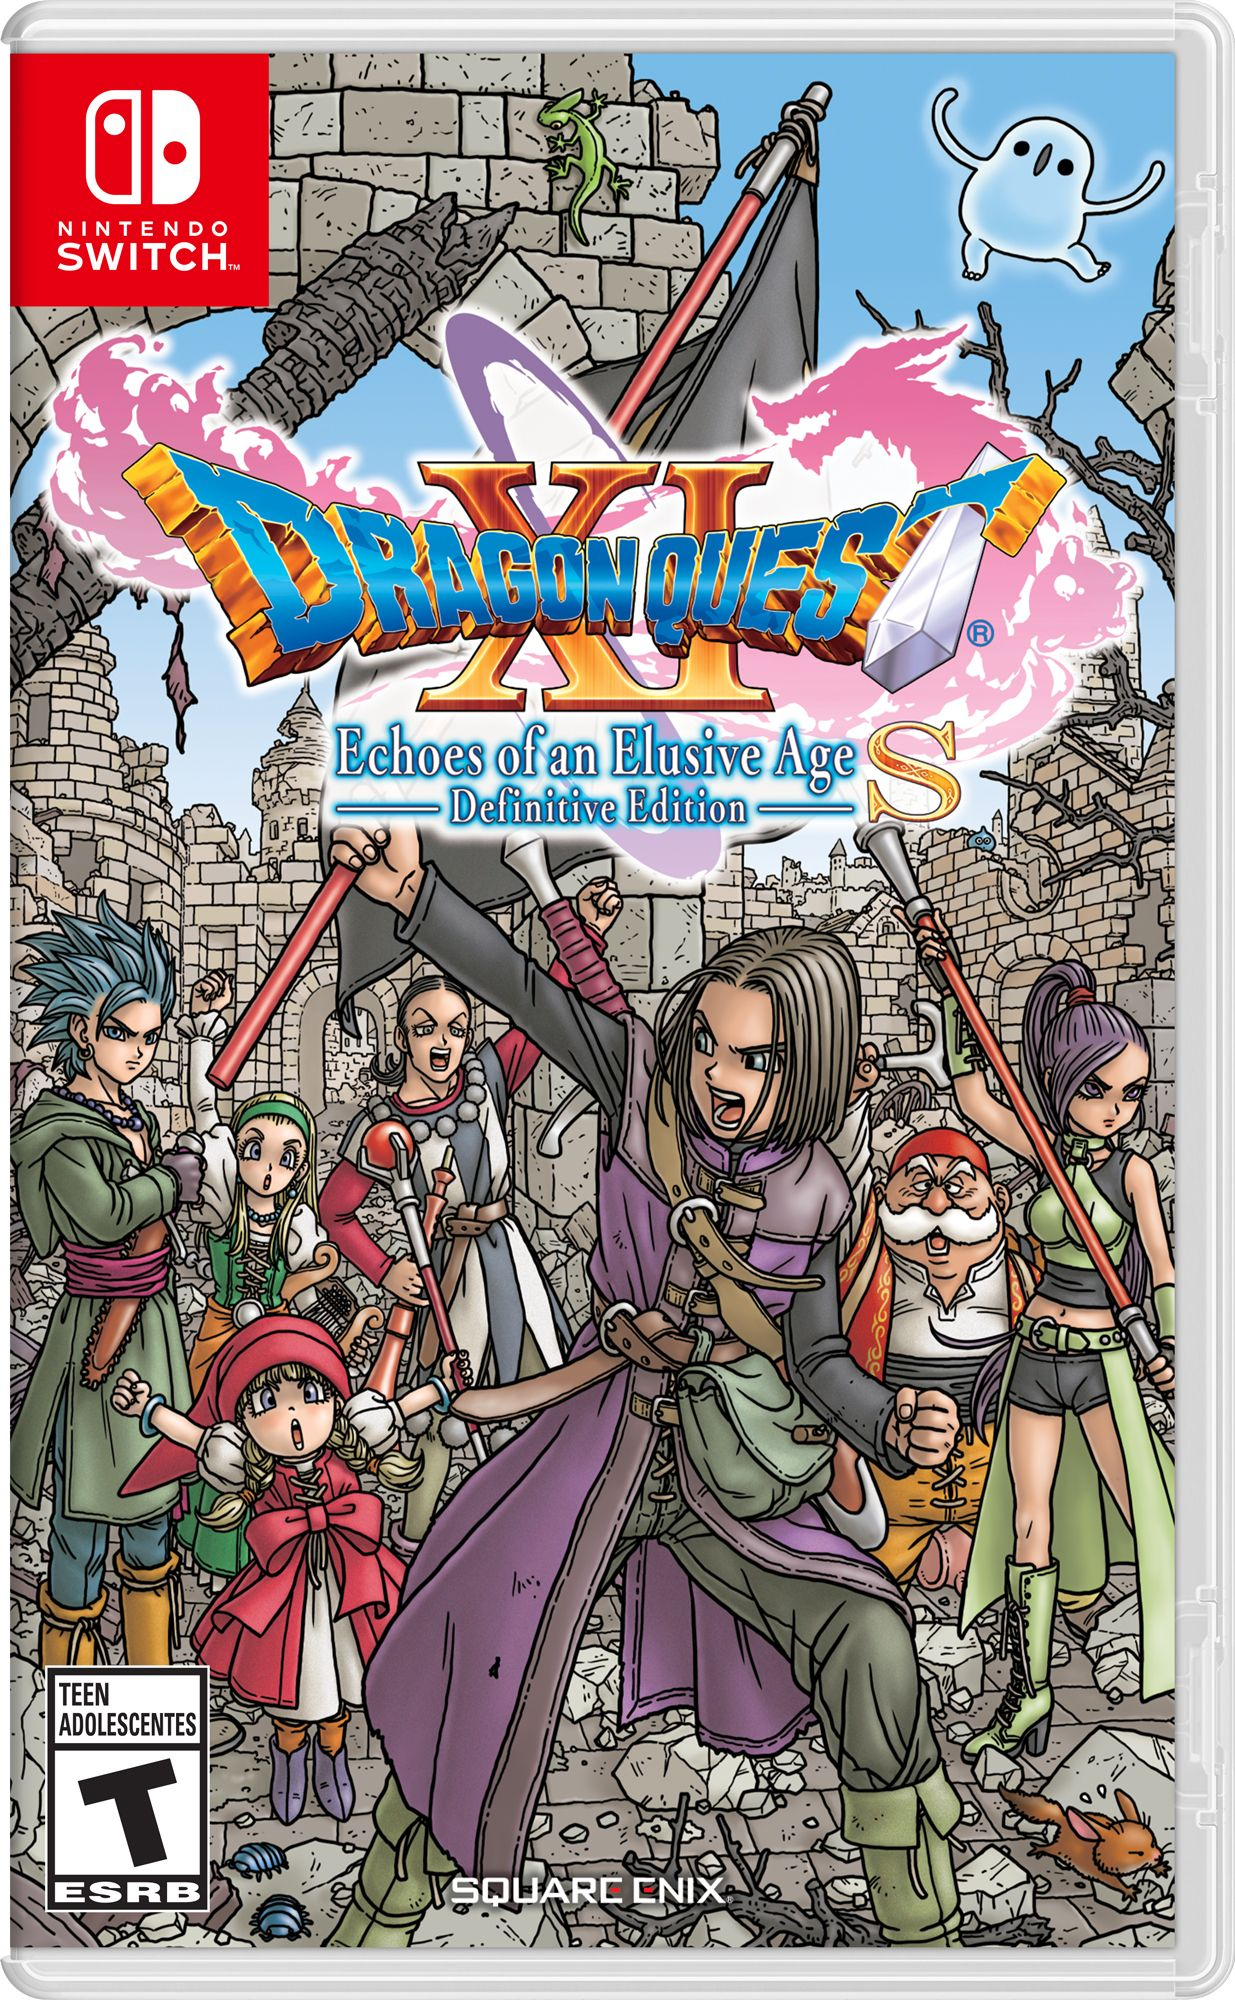 Dragon Quest Xi S Echoes Of An Elusive Age Definitive Edition Nintendo Nintendo Switch Walmart Com In 2021 Dragon Quest Nintendo Switch System Nintendo Switch